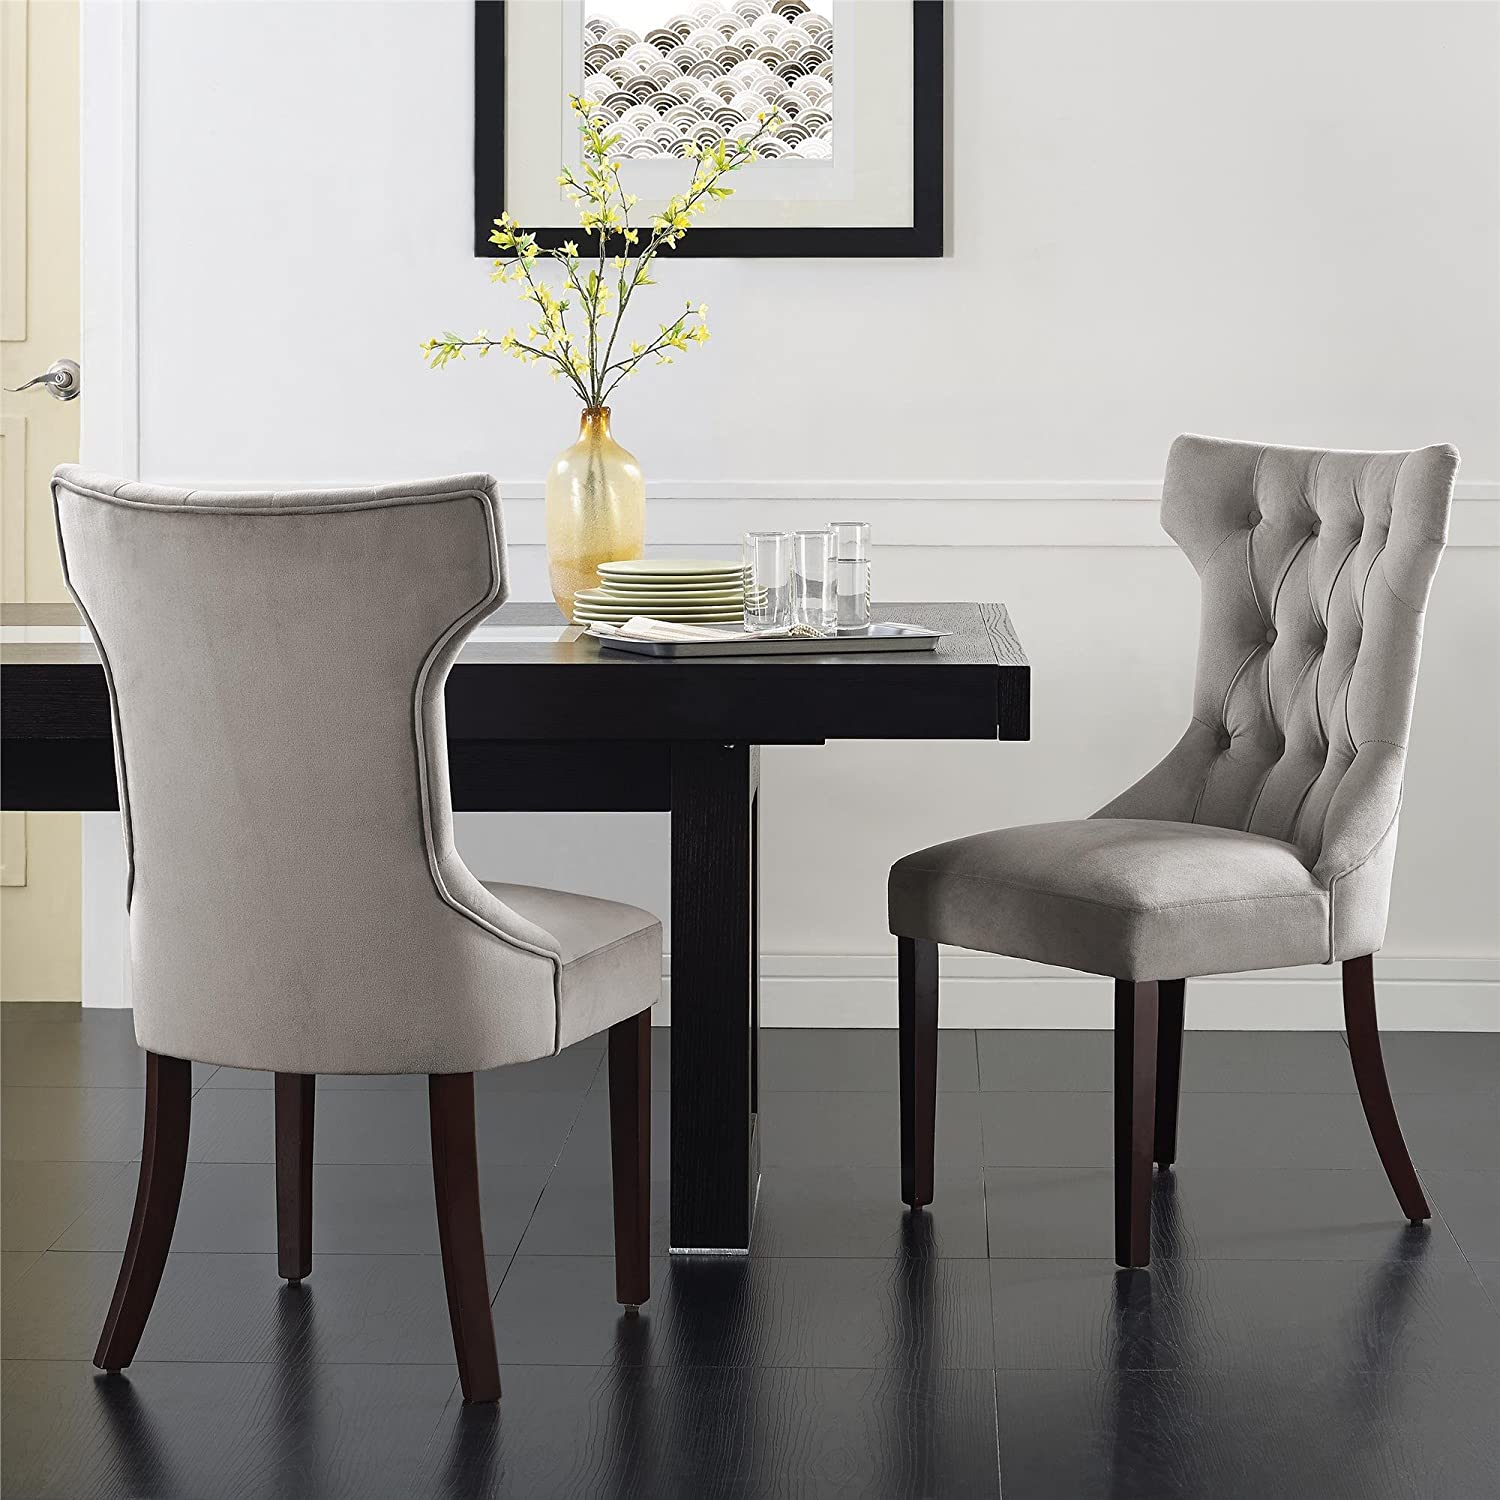 Amazon.com - Dorel Living Clairborne Tufted Upholestered Dining ...